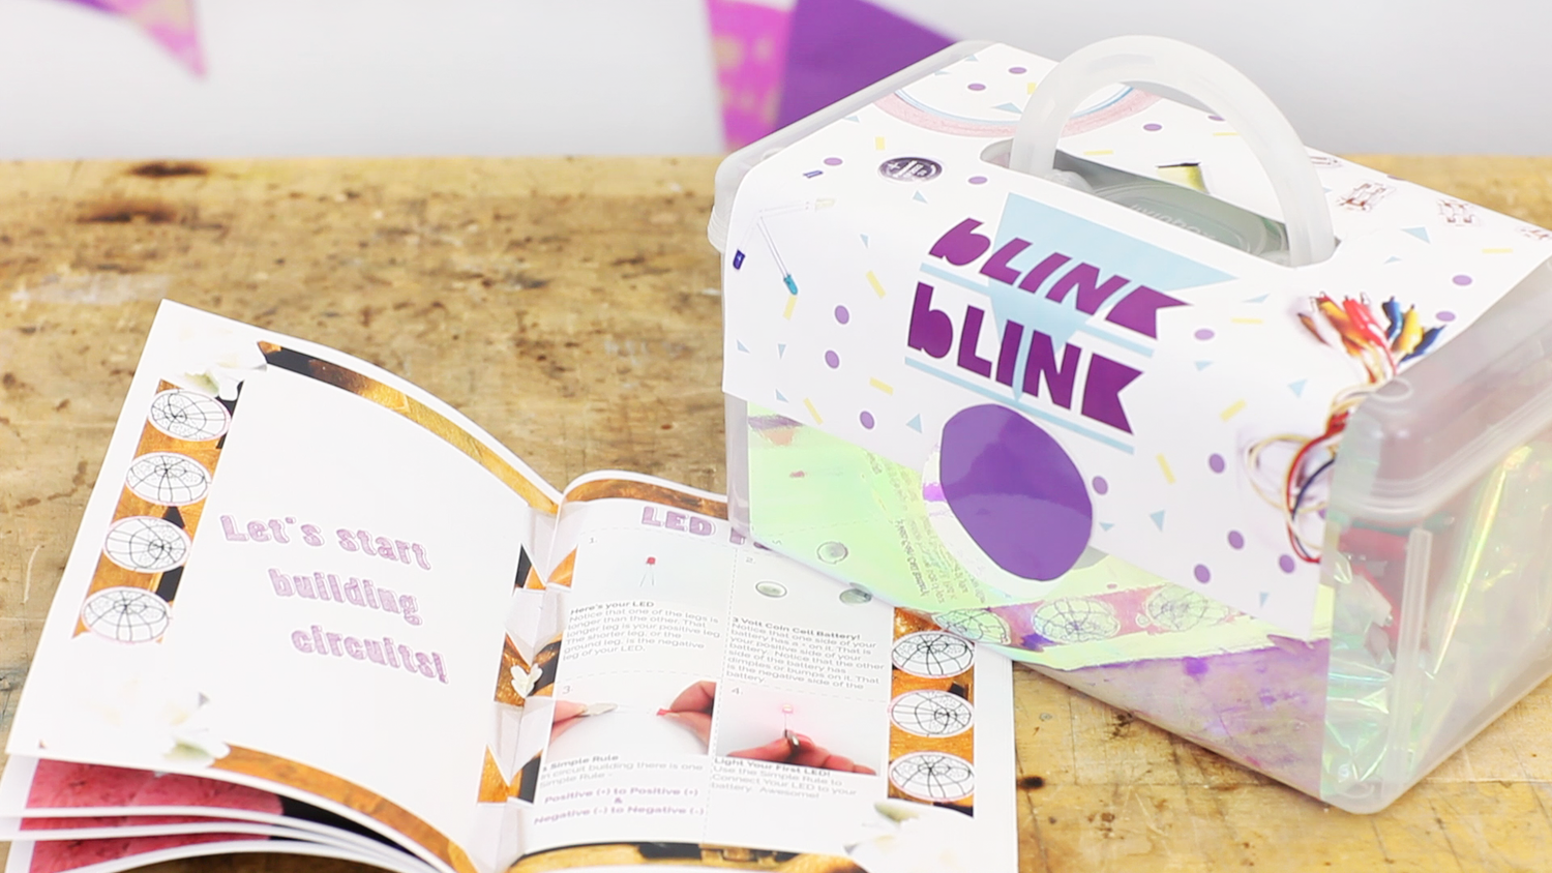 blink blink kits provide circuit materials to make fun DIY, art & fashion projects with technology. Designed with girls, for girls!